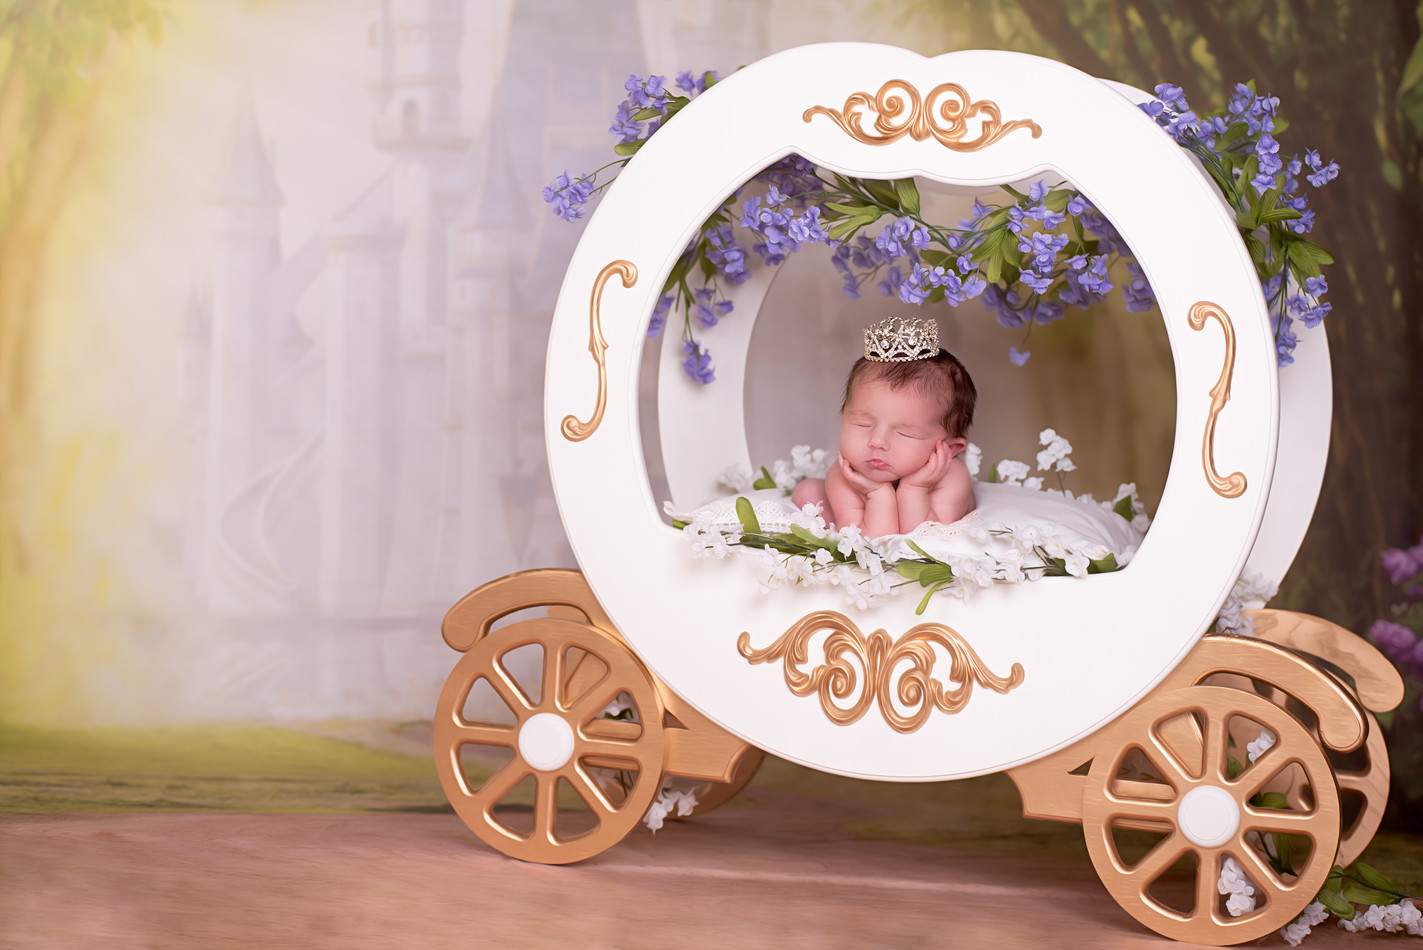 Princess Newborn picture with carriage